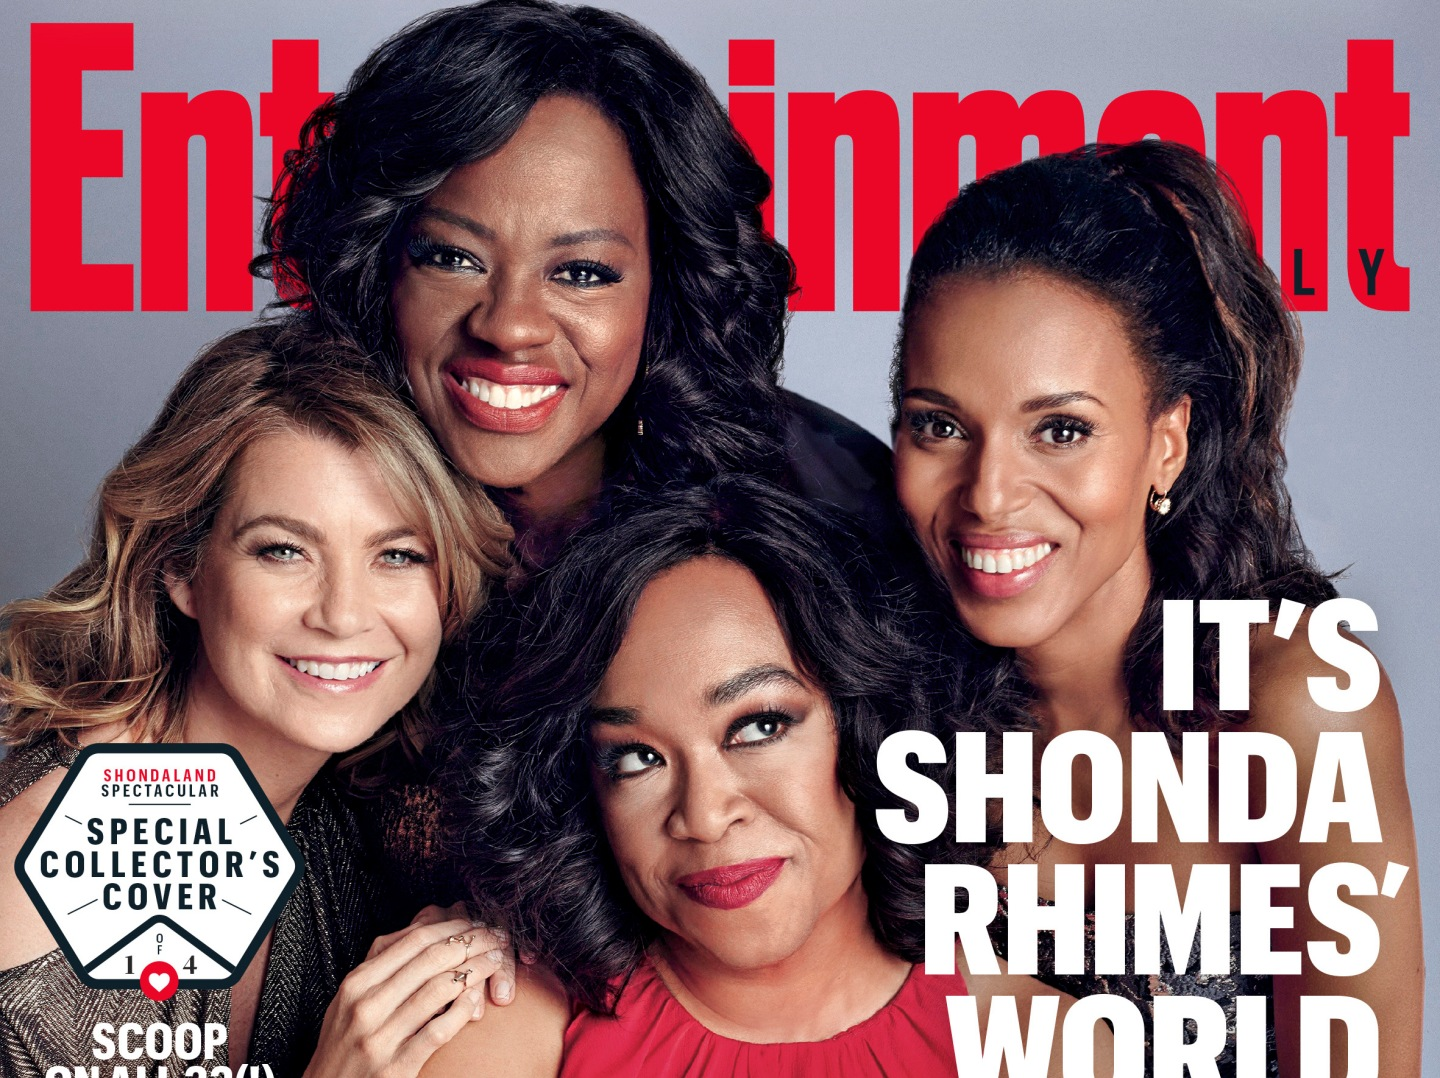 Why Shonda Rhimes Needs to be Stopped – facts only